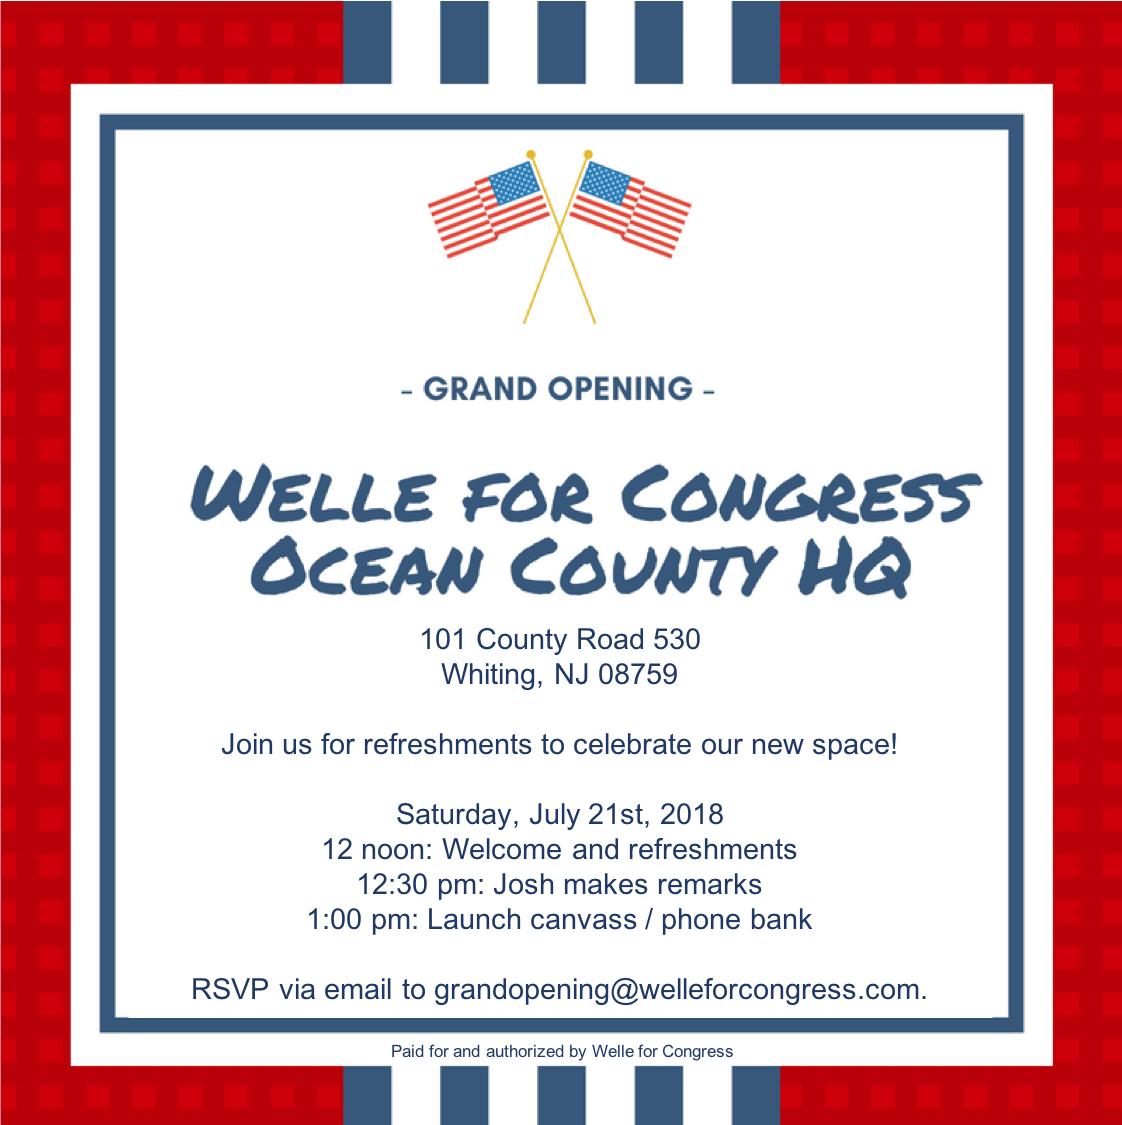 Grand_opening_ocean_county_v2.png